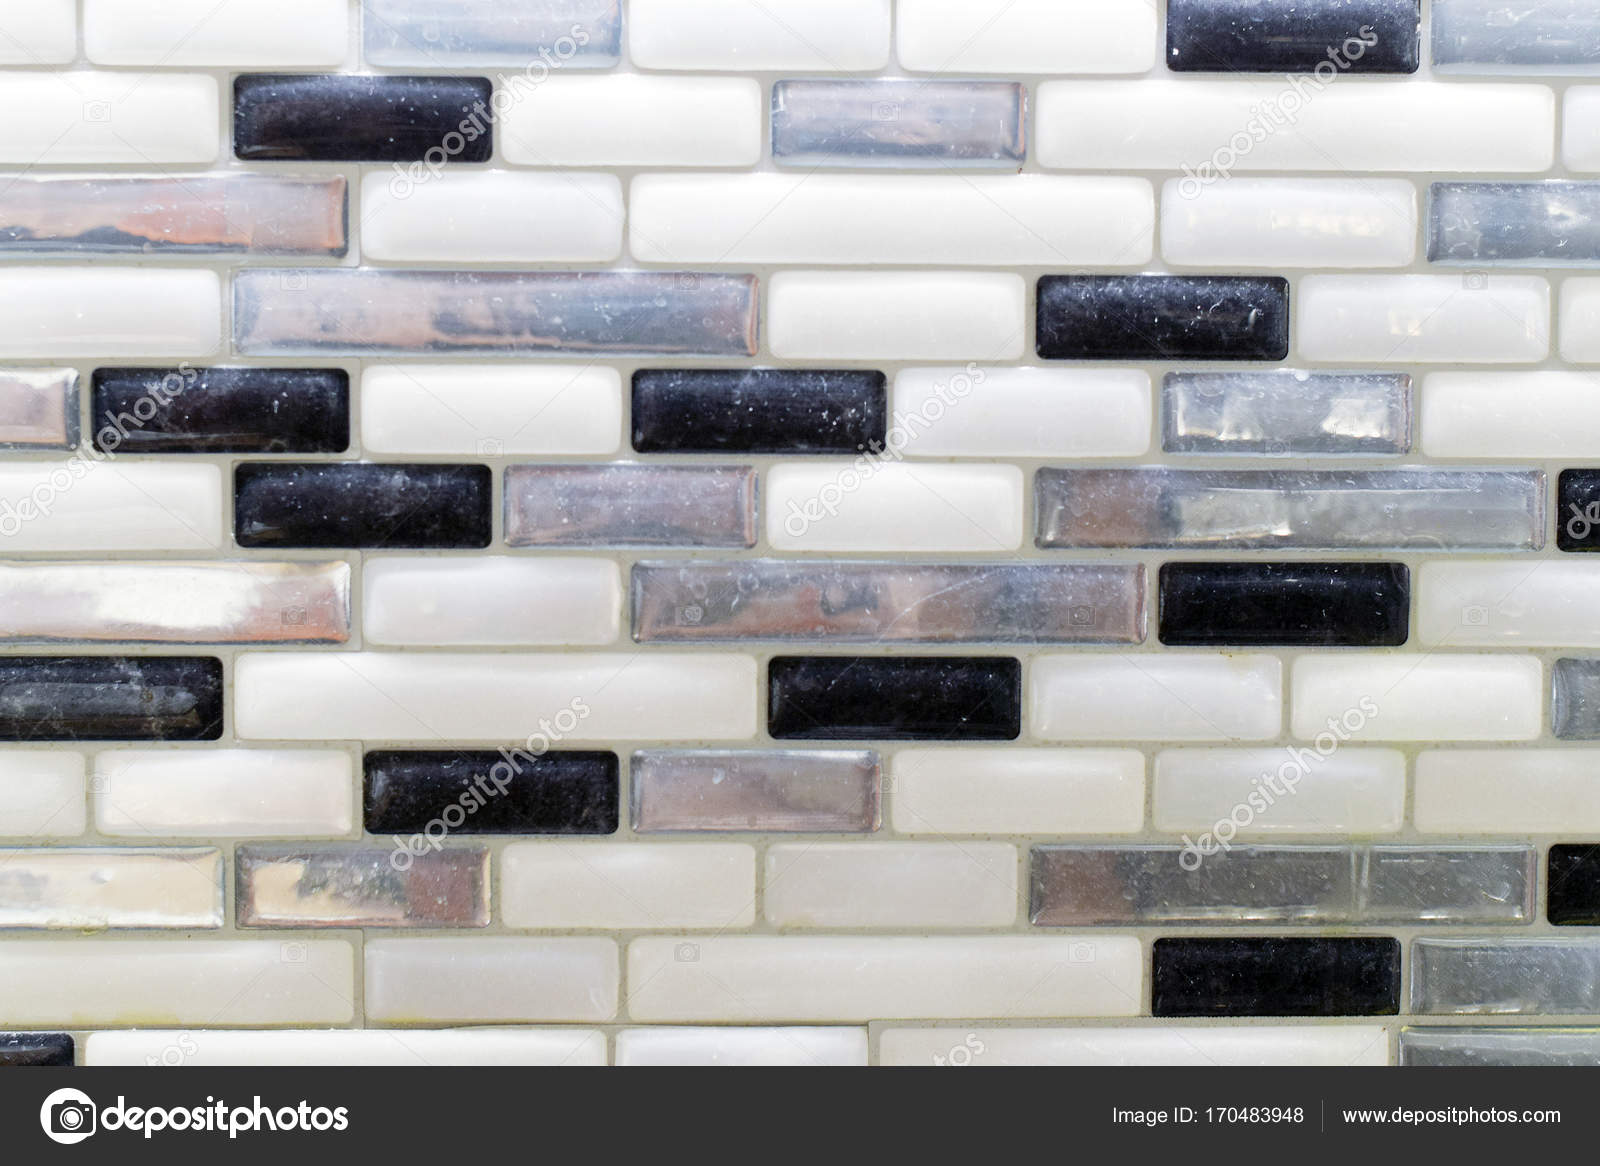 - Pictures : Glass Tile Backsplash In Kitchen Black White And Gray